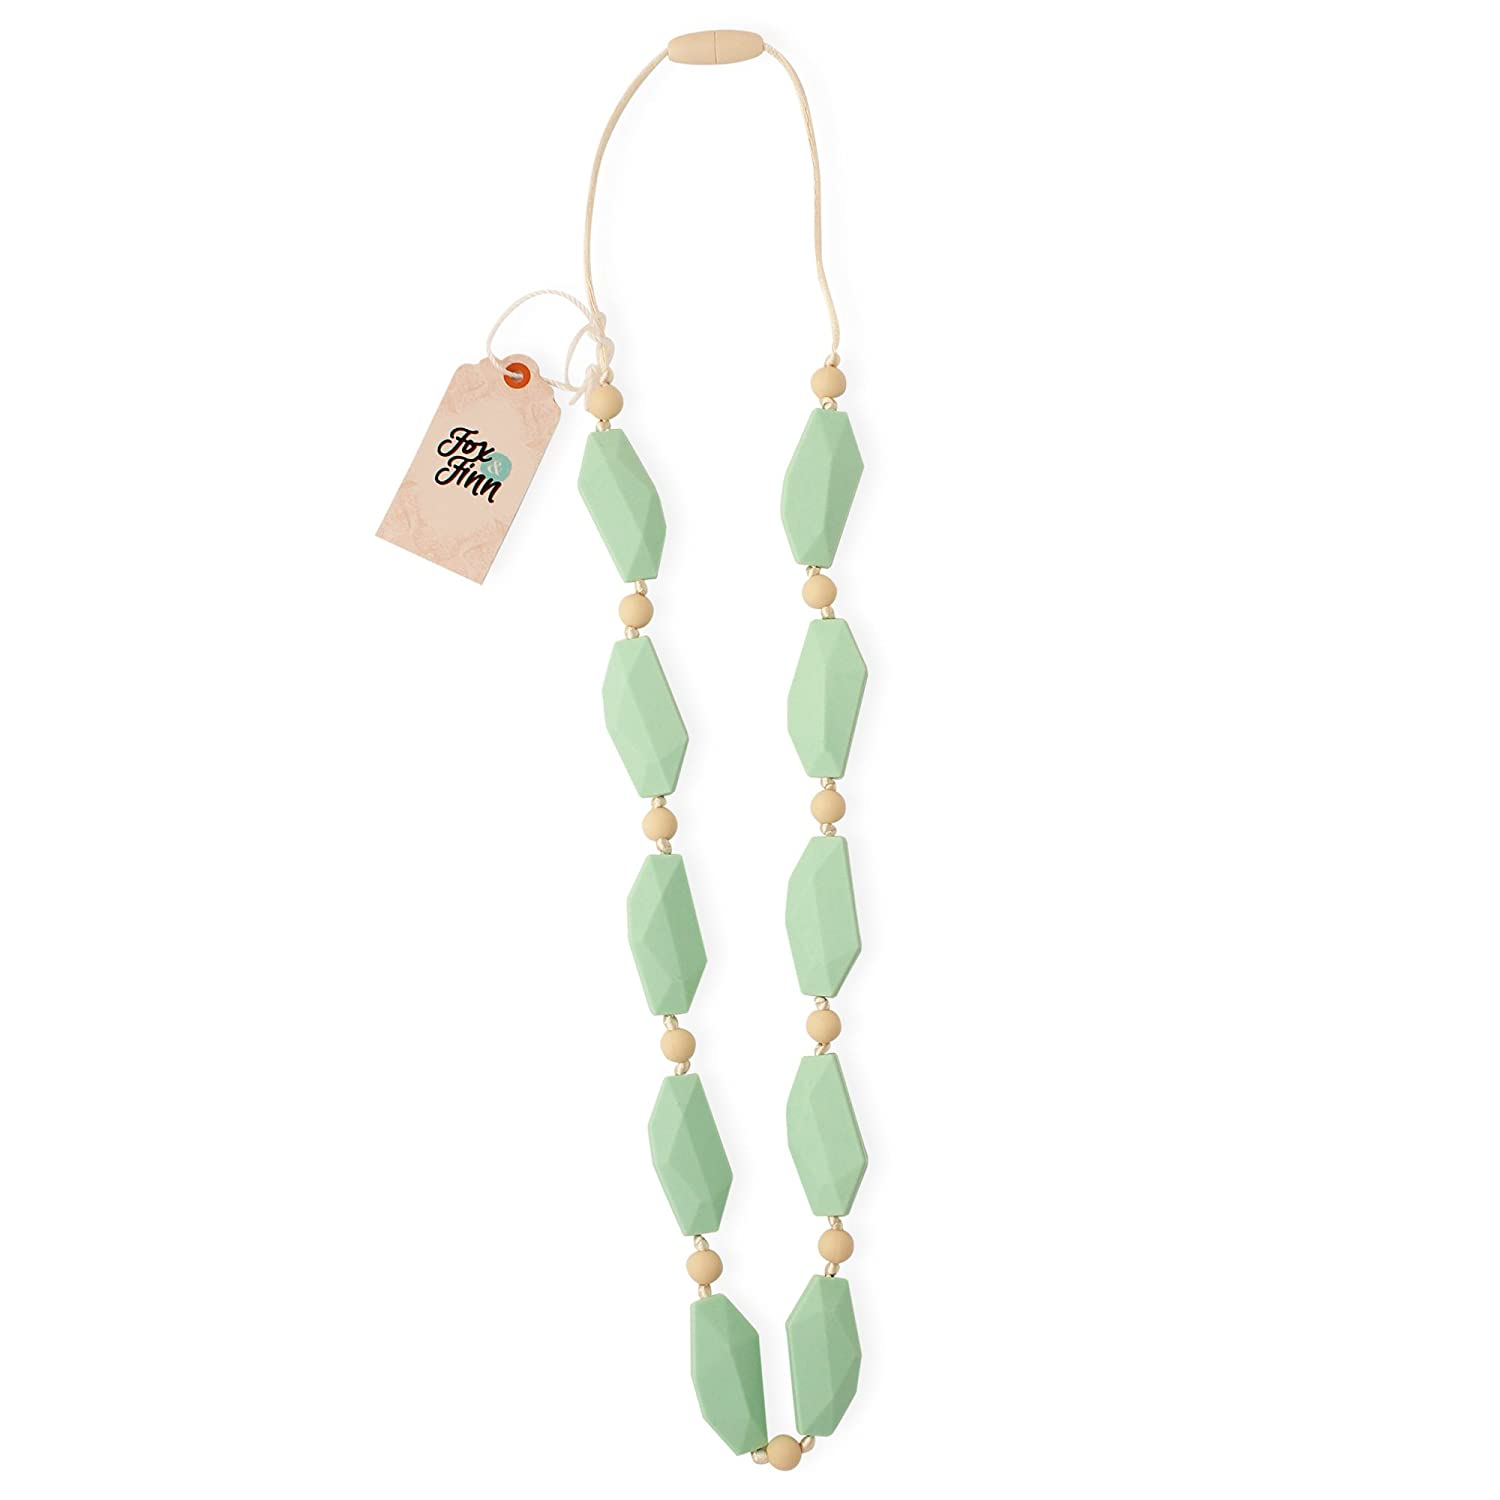 Fox and Finn 'Sophia' Silicone Teething Necklace for Babies | Safety Knotted Silk Rope | Does Not Pull Out Hair | 14 Inch Drop (mint gelato) by Fox and Finn   B010HYL912